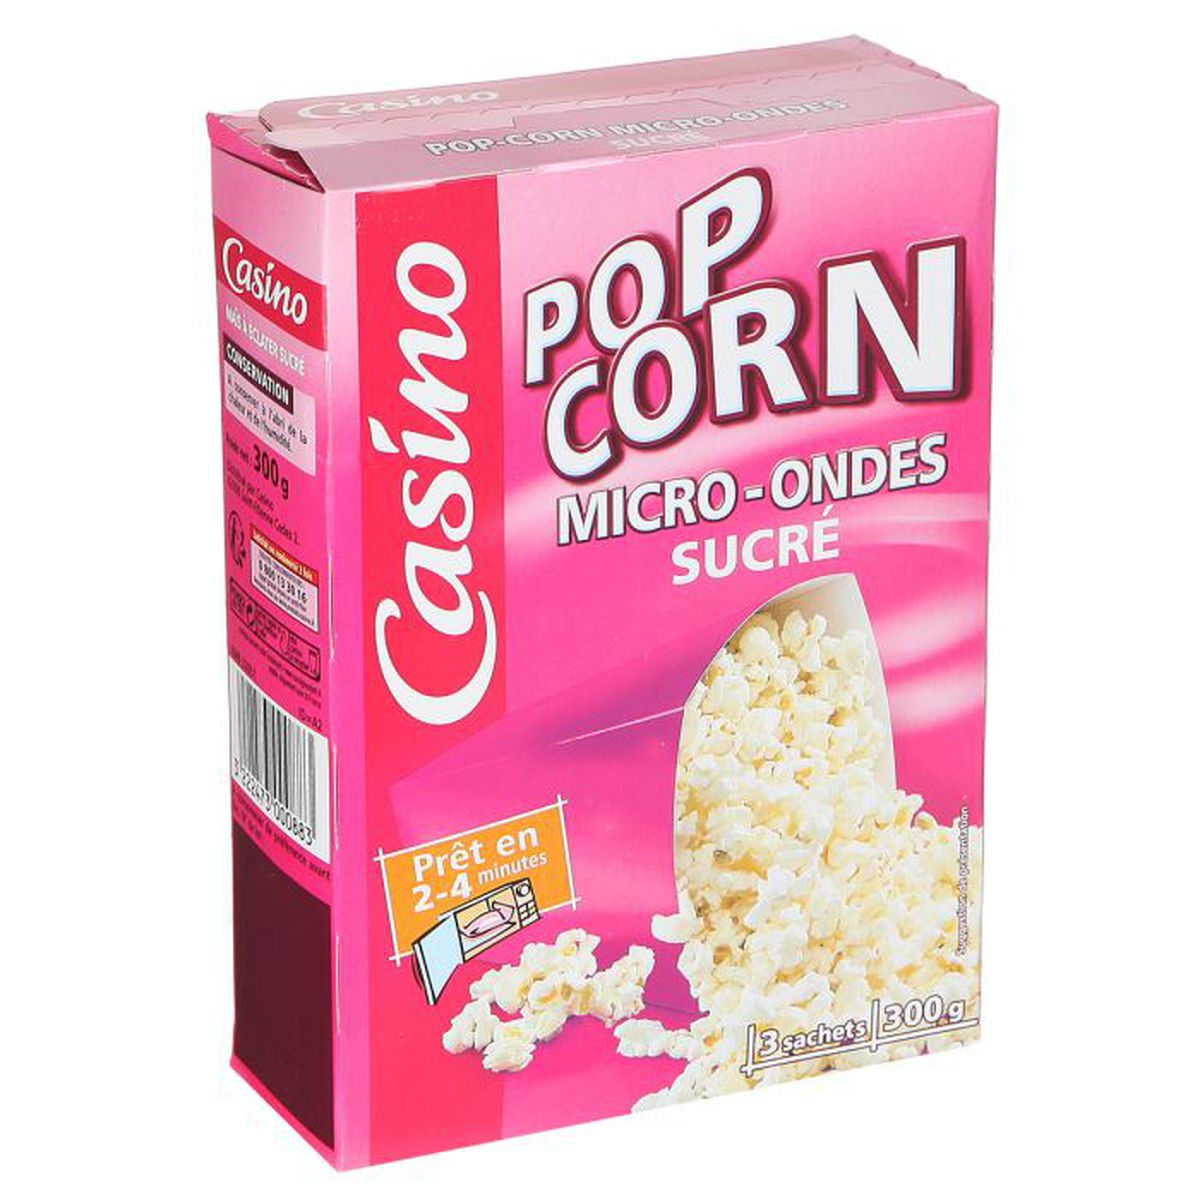 casino popcorn sucr micro onde 300g achat vente biscuits ap ritif casino popcorn sucr m o. Black Bedroom Furniture Sets. Home Design Ideas